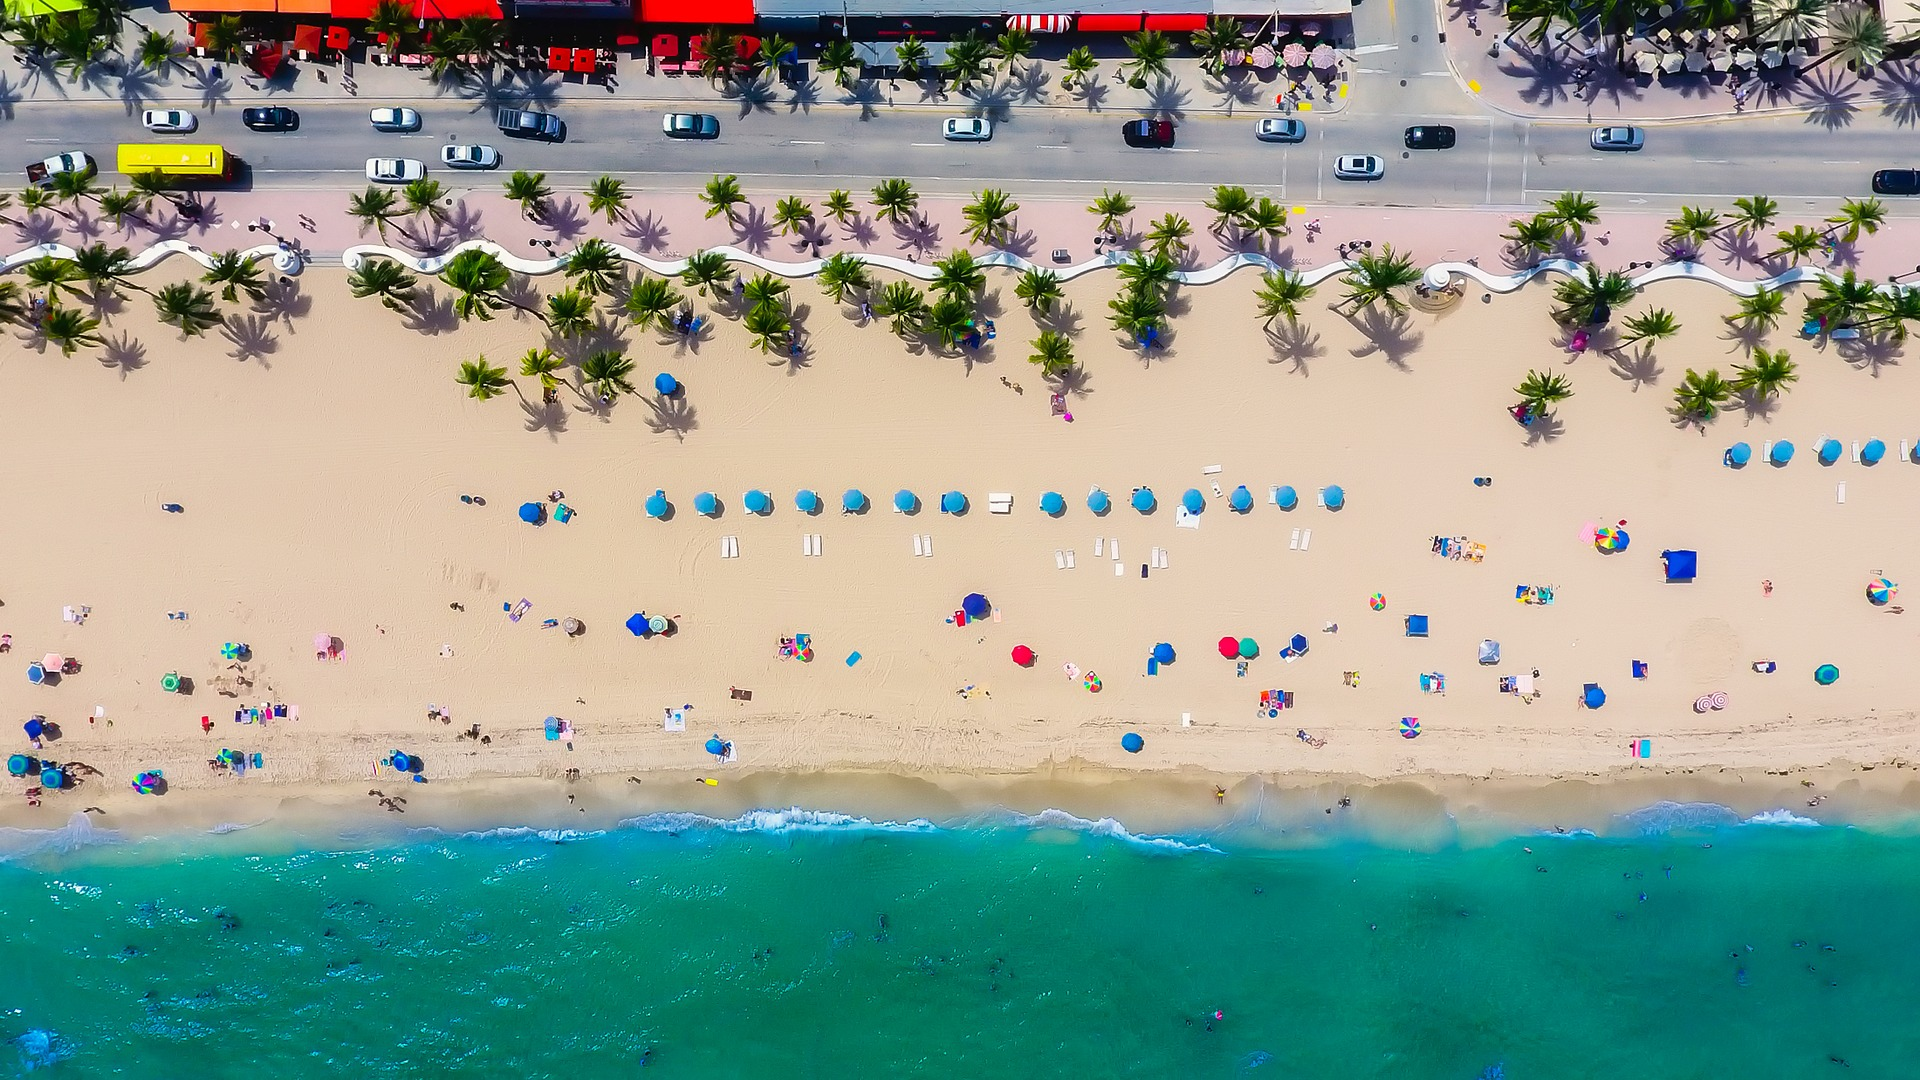 Drone image of beach in Fort Lauderdale, Florida